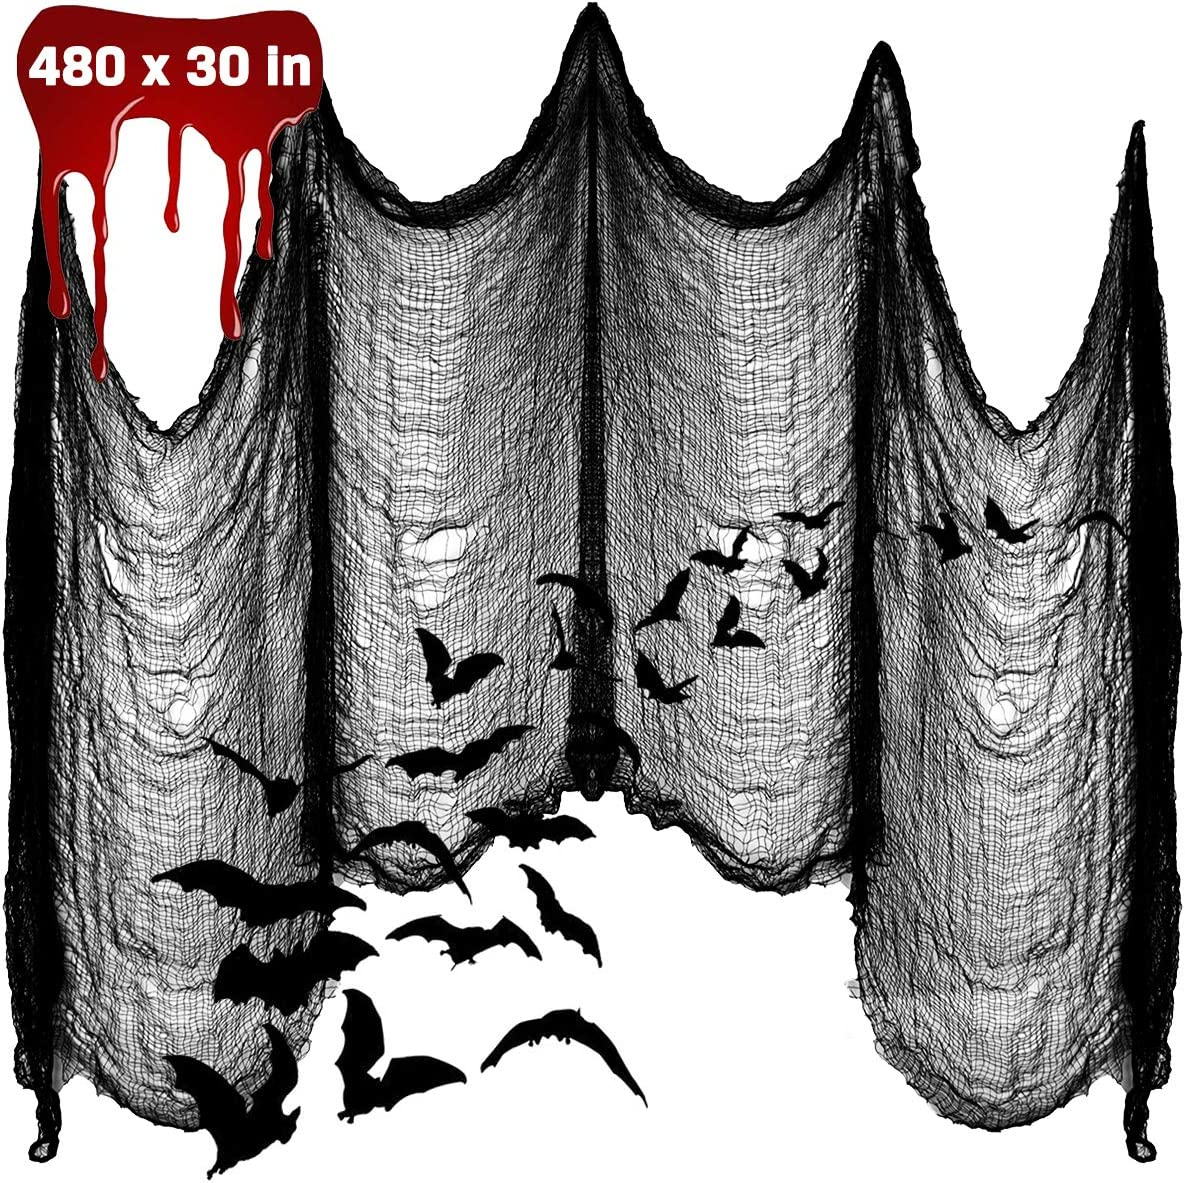 """Apfity Halloween Creepy Cloth Decoration, 480"""" x 30"""" Giant Spooky Halloween Decor for Haunted Houses Party Outdoor Yard Home, Black"""